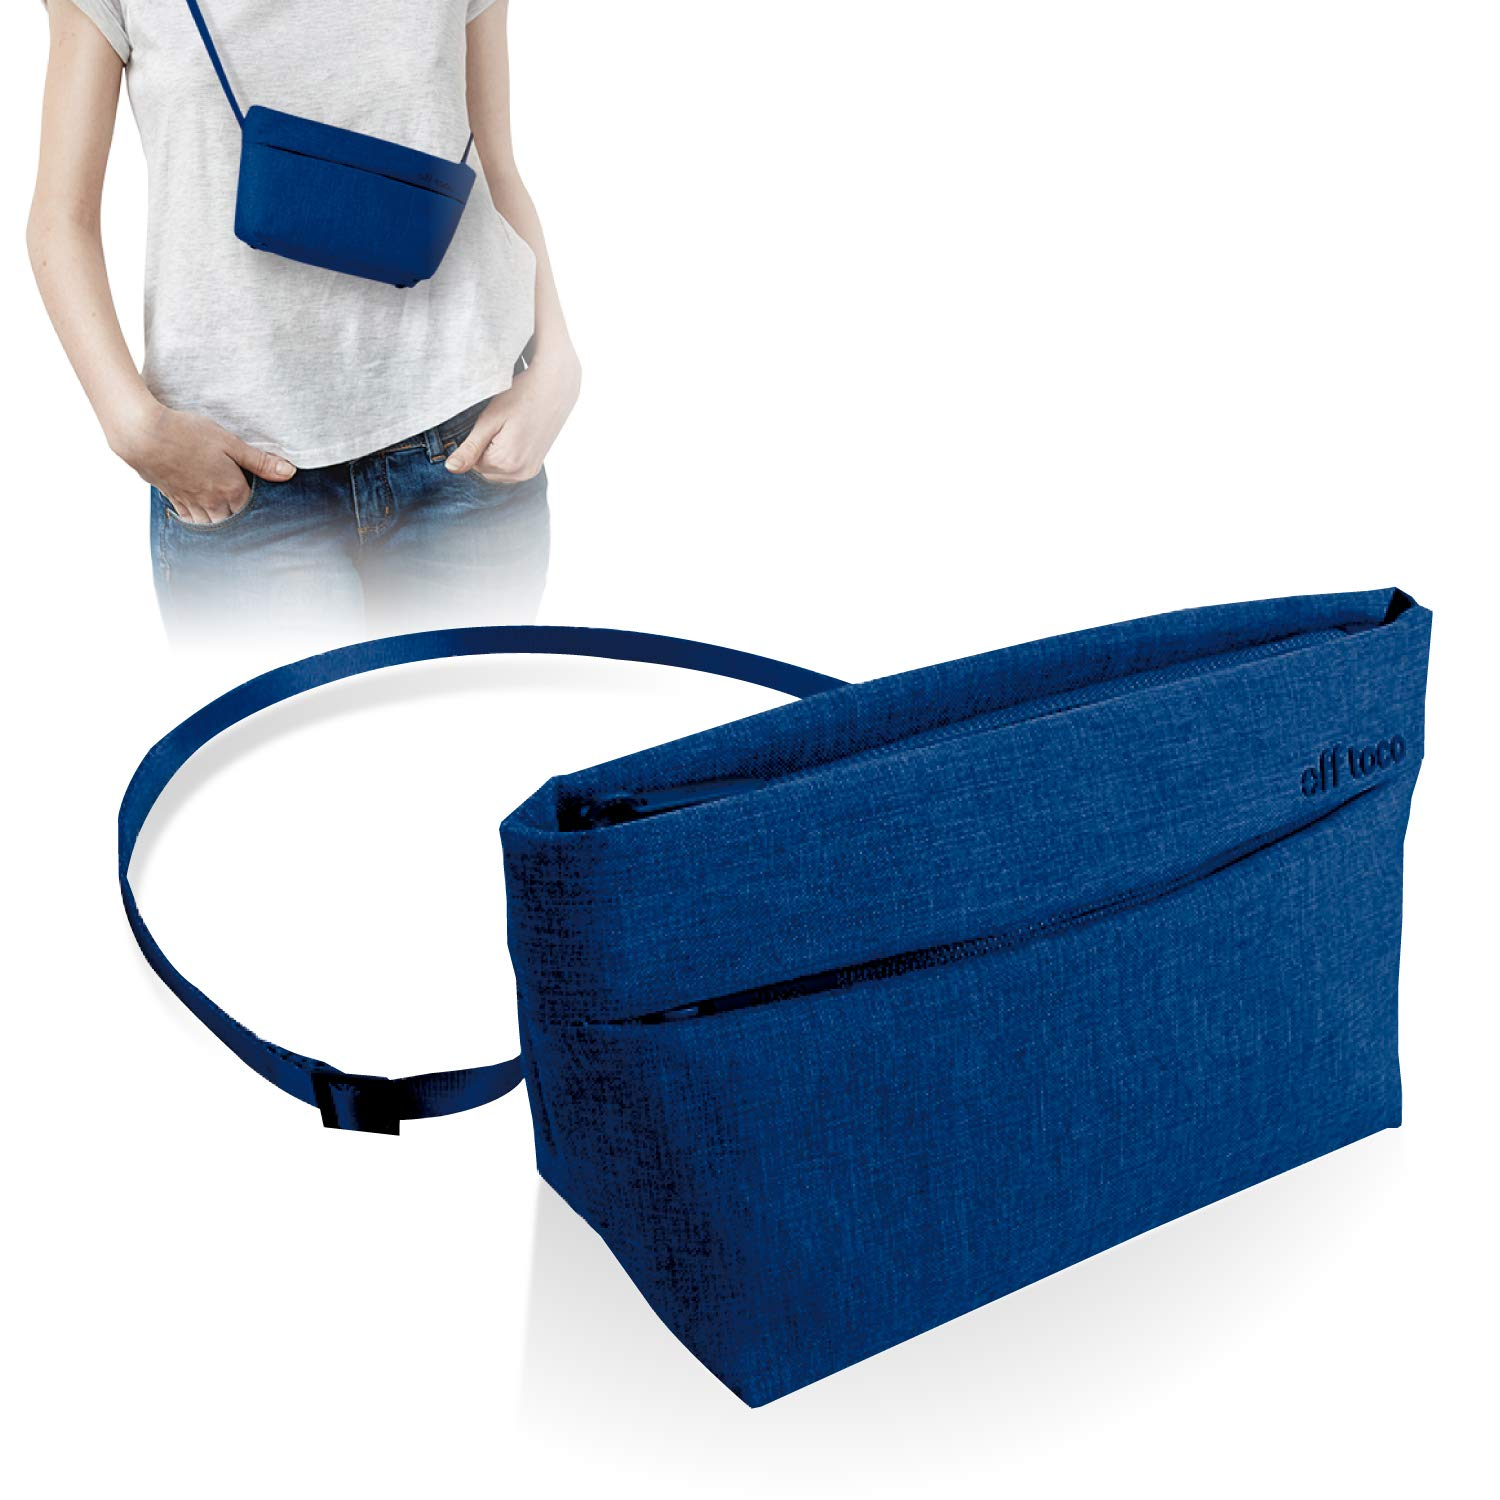 ELECOM Offtoco Series Pouch Sacosh Bag, Slim Design, Multiple Pockets, Water Repellent Material, Bright Inner Packaging Color/Navy/BMA-OF02NV